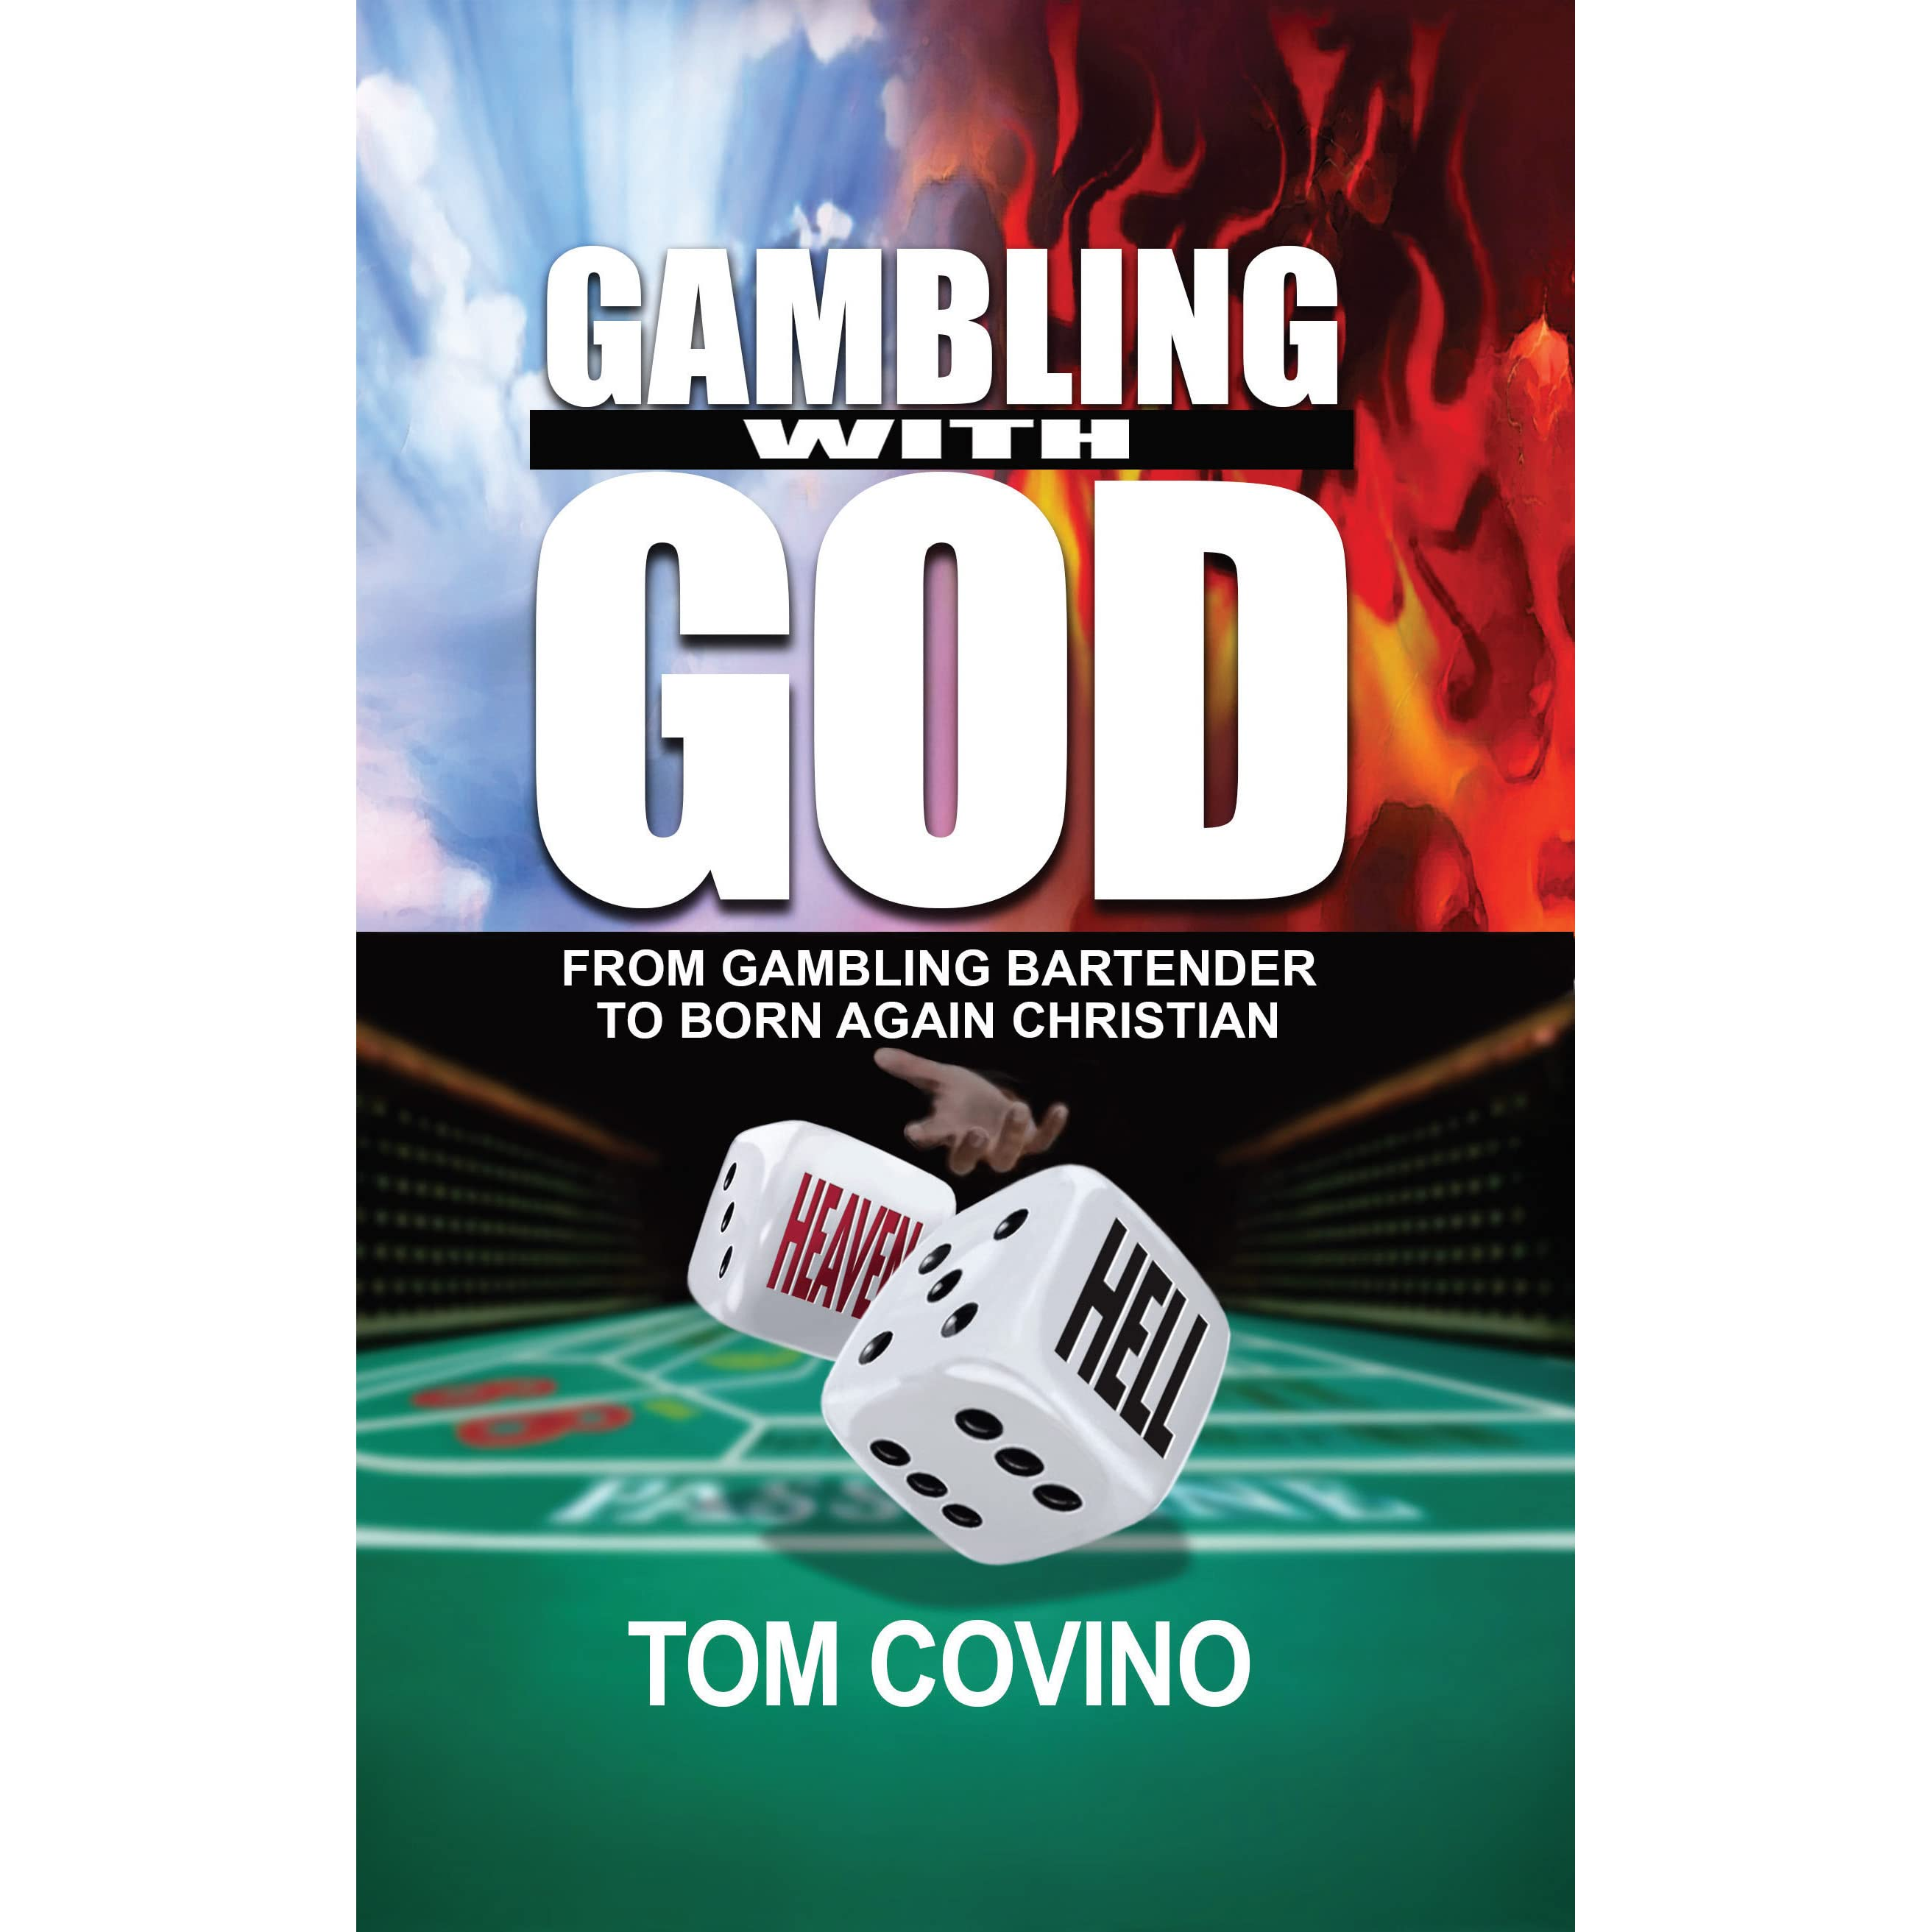 Gambling and christianity religion free high quality pokies